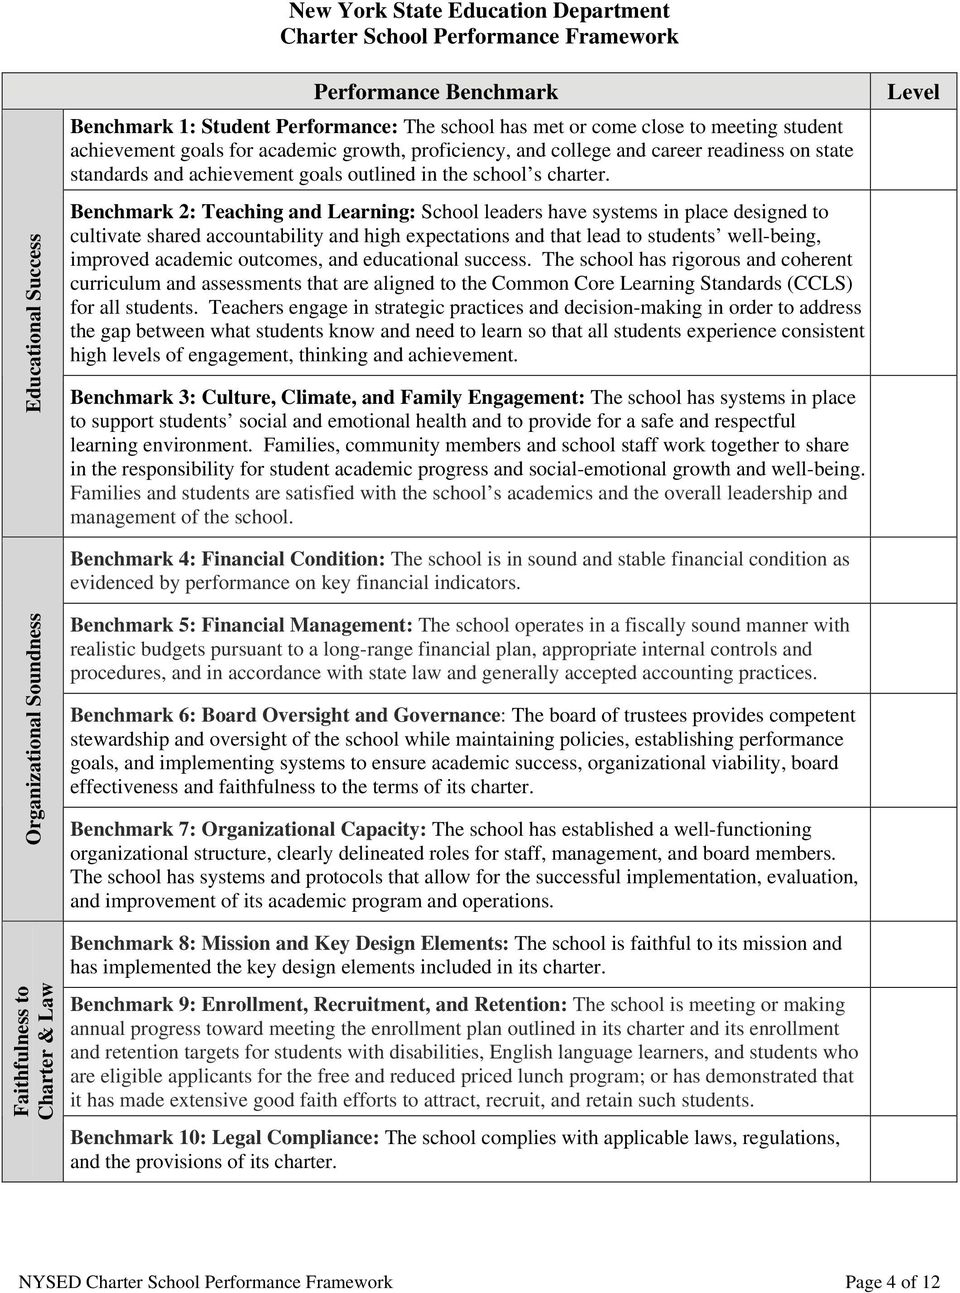 Benchmark 2: Teaching and Learning: School leaders have systems in place designed to cultivate shared accountability and high expectations and that lead to students well-being, improved academic